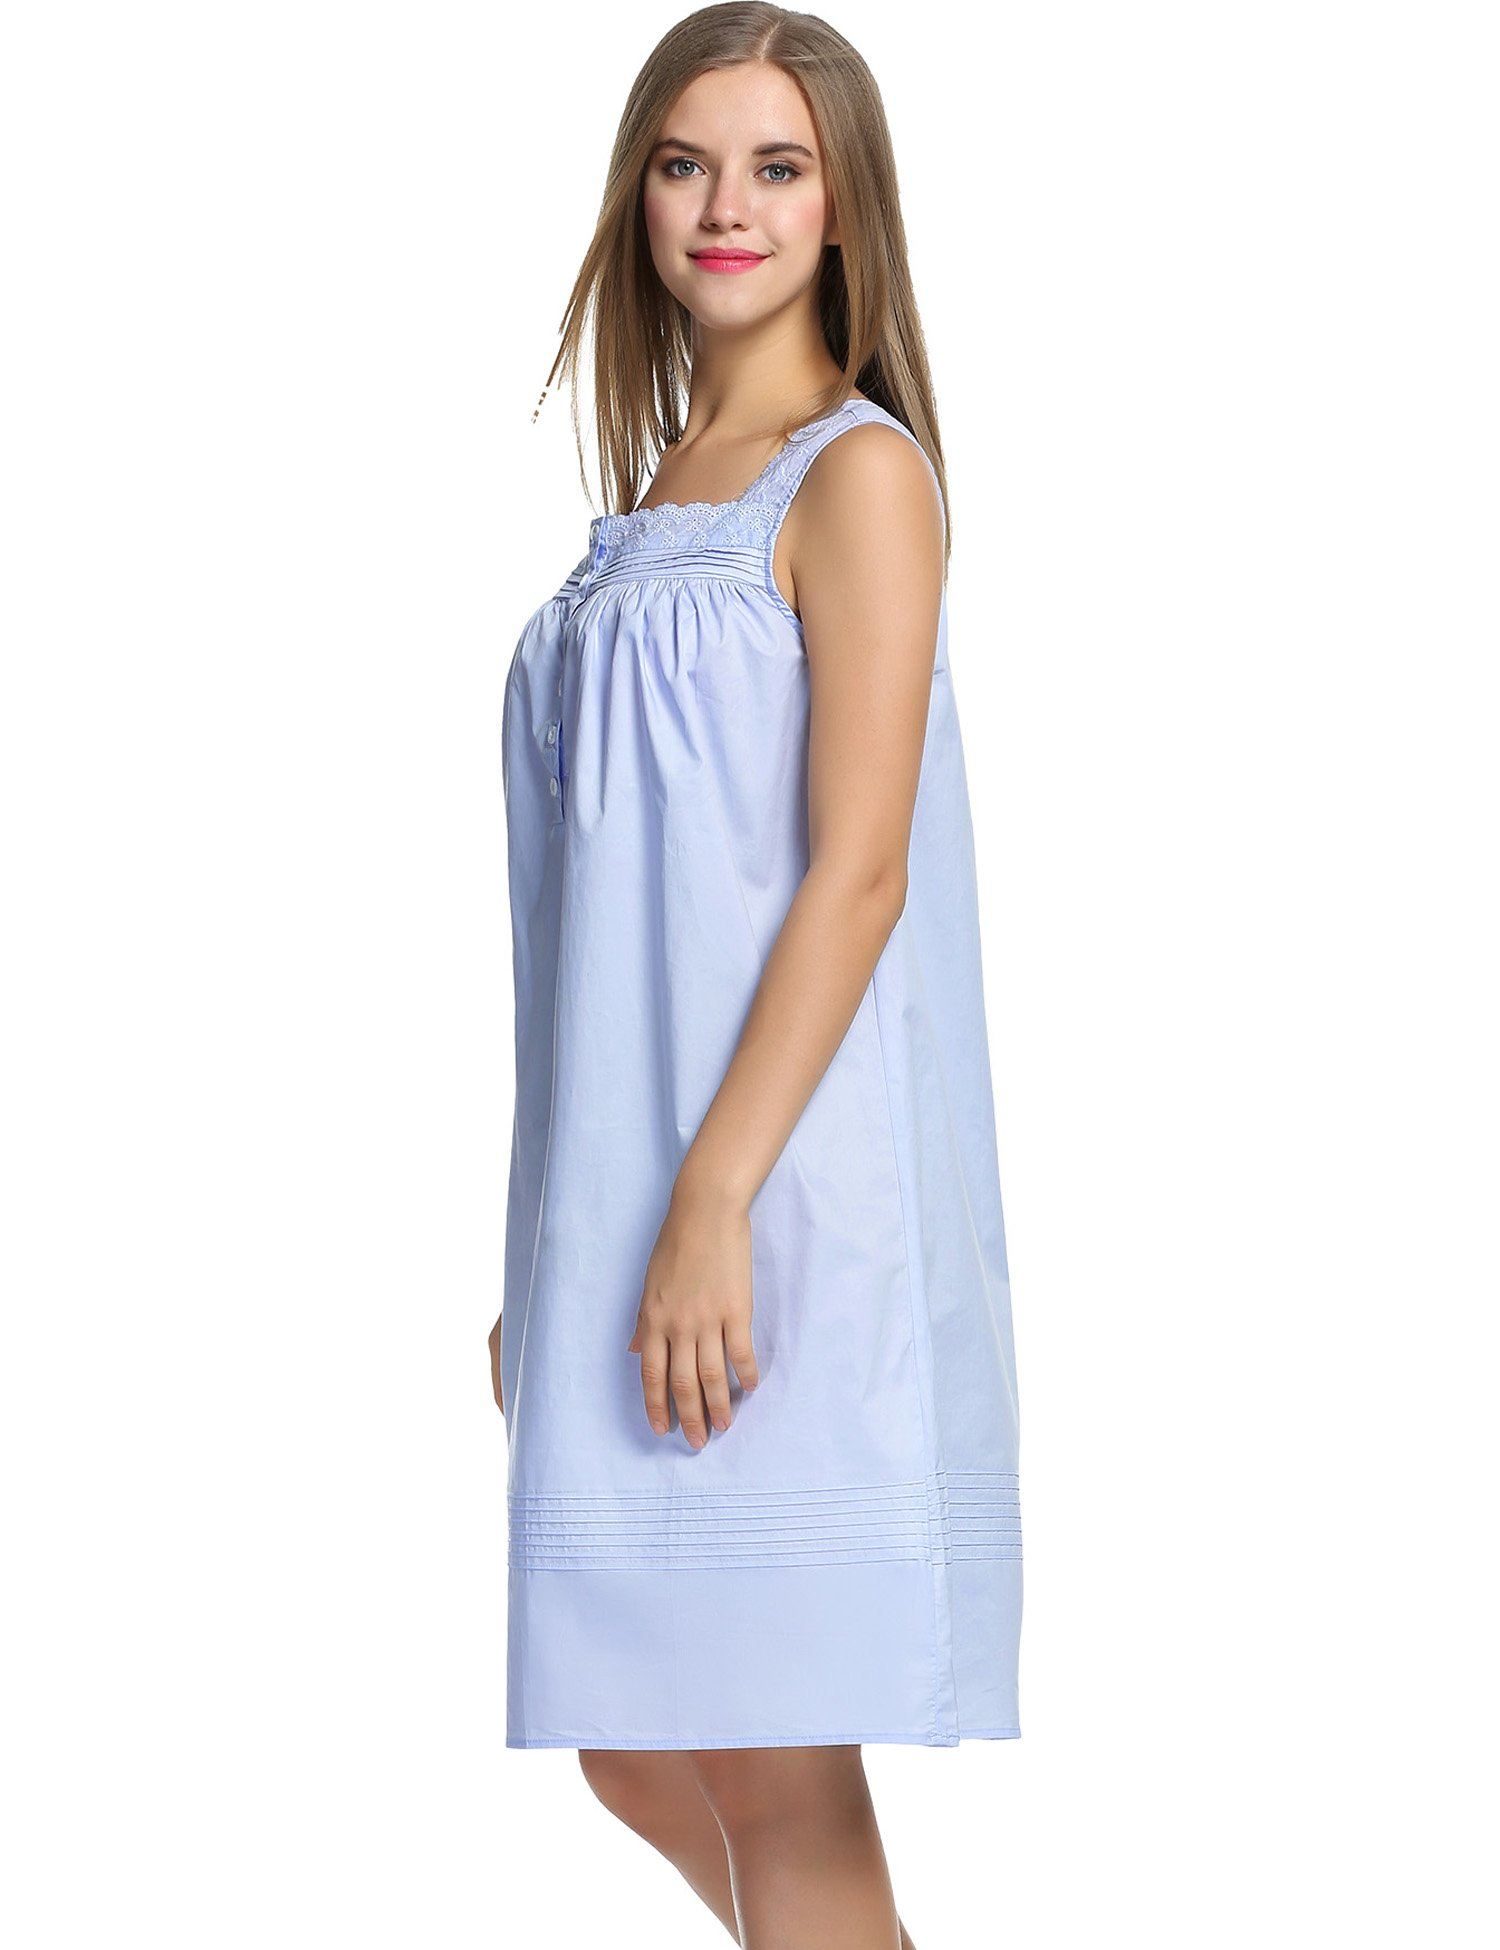 Hotouch Women's Plus-Size Sleep Shirt Lightweight Nightgowns Light Blue L by Hotouch (Image #4)